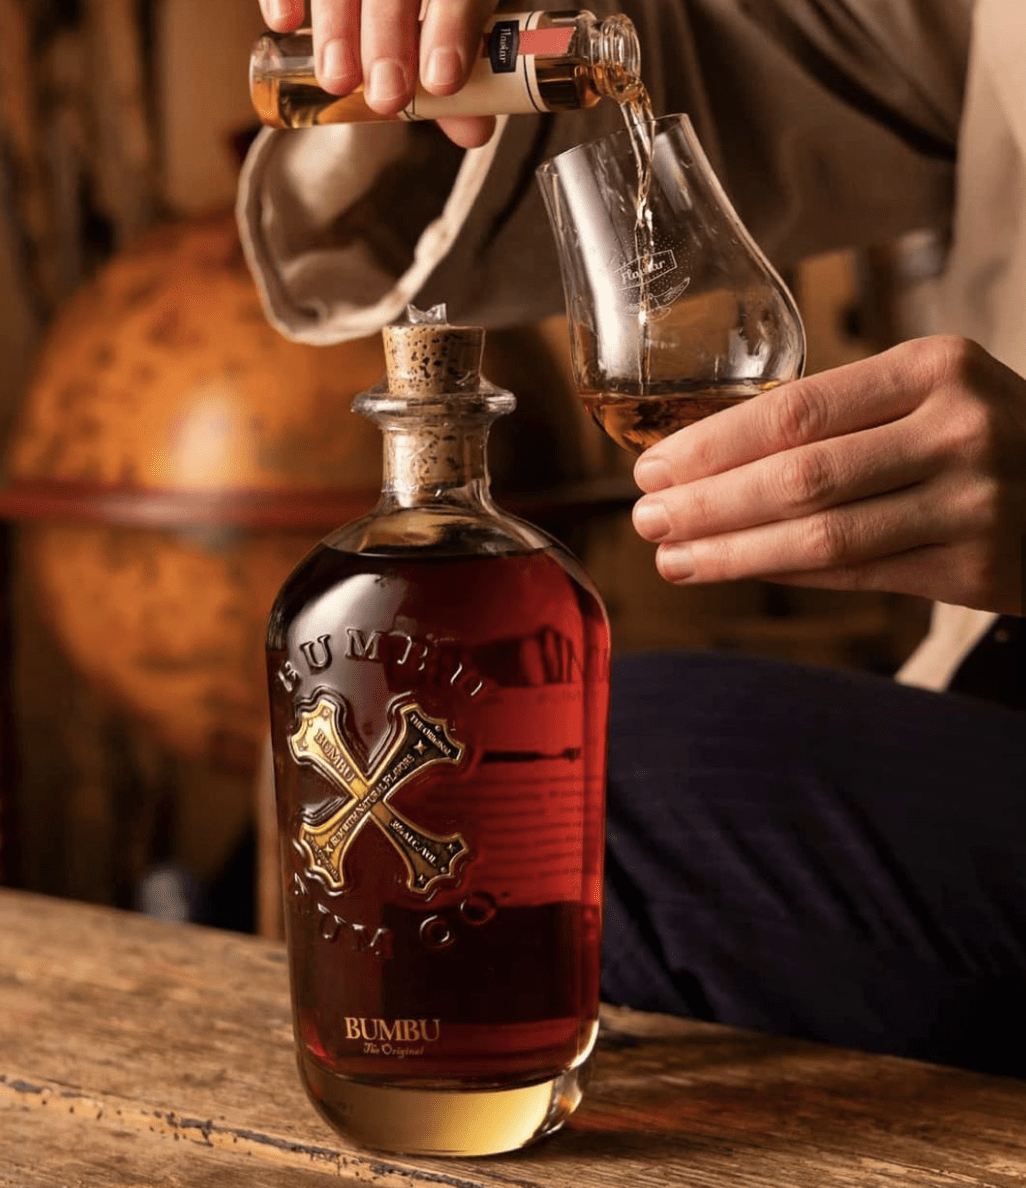 You are currently viewing Bumbu | German Rum Festival 2021